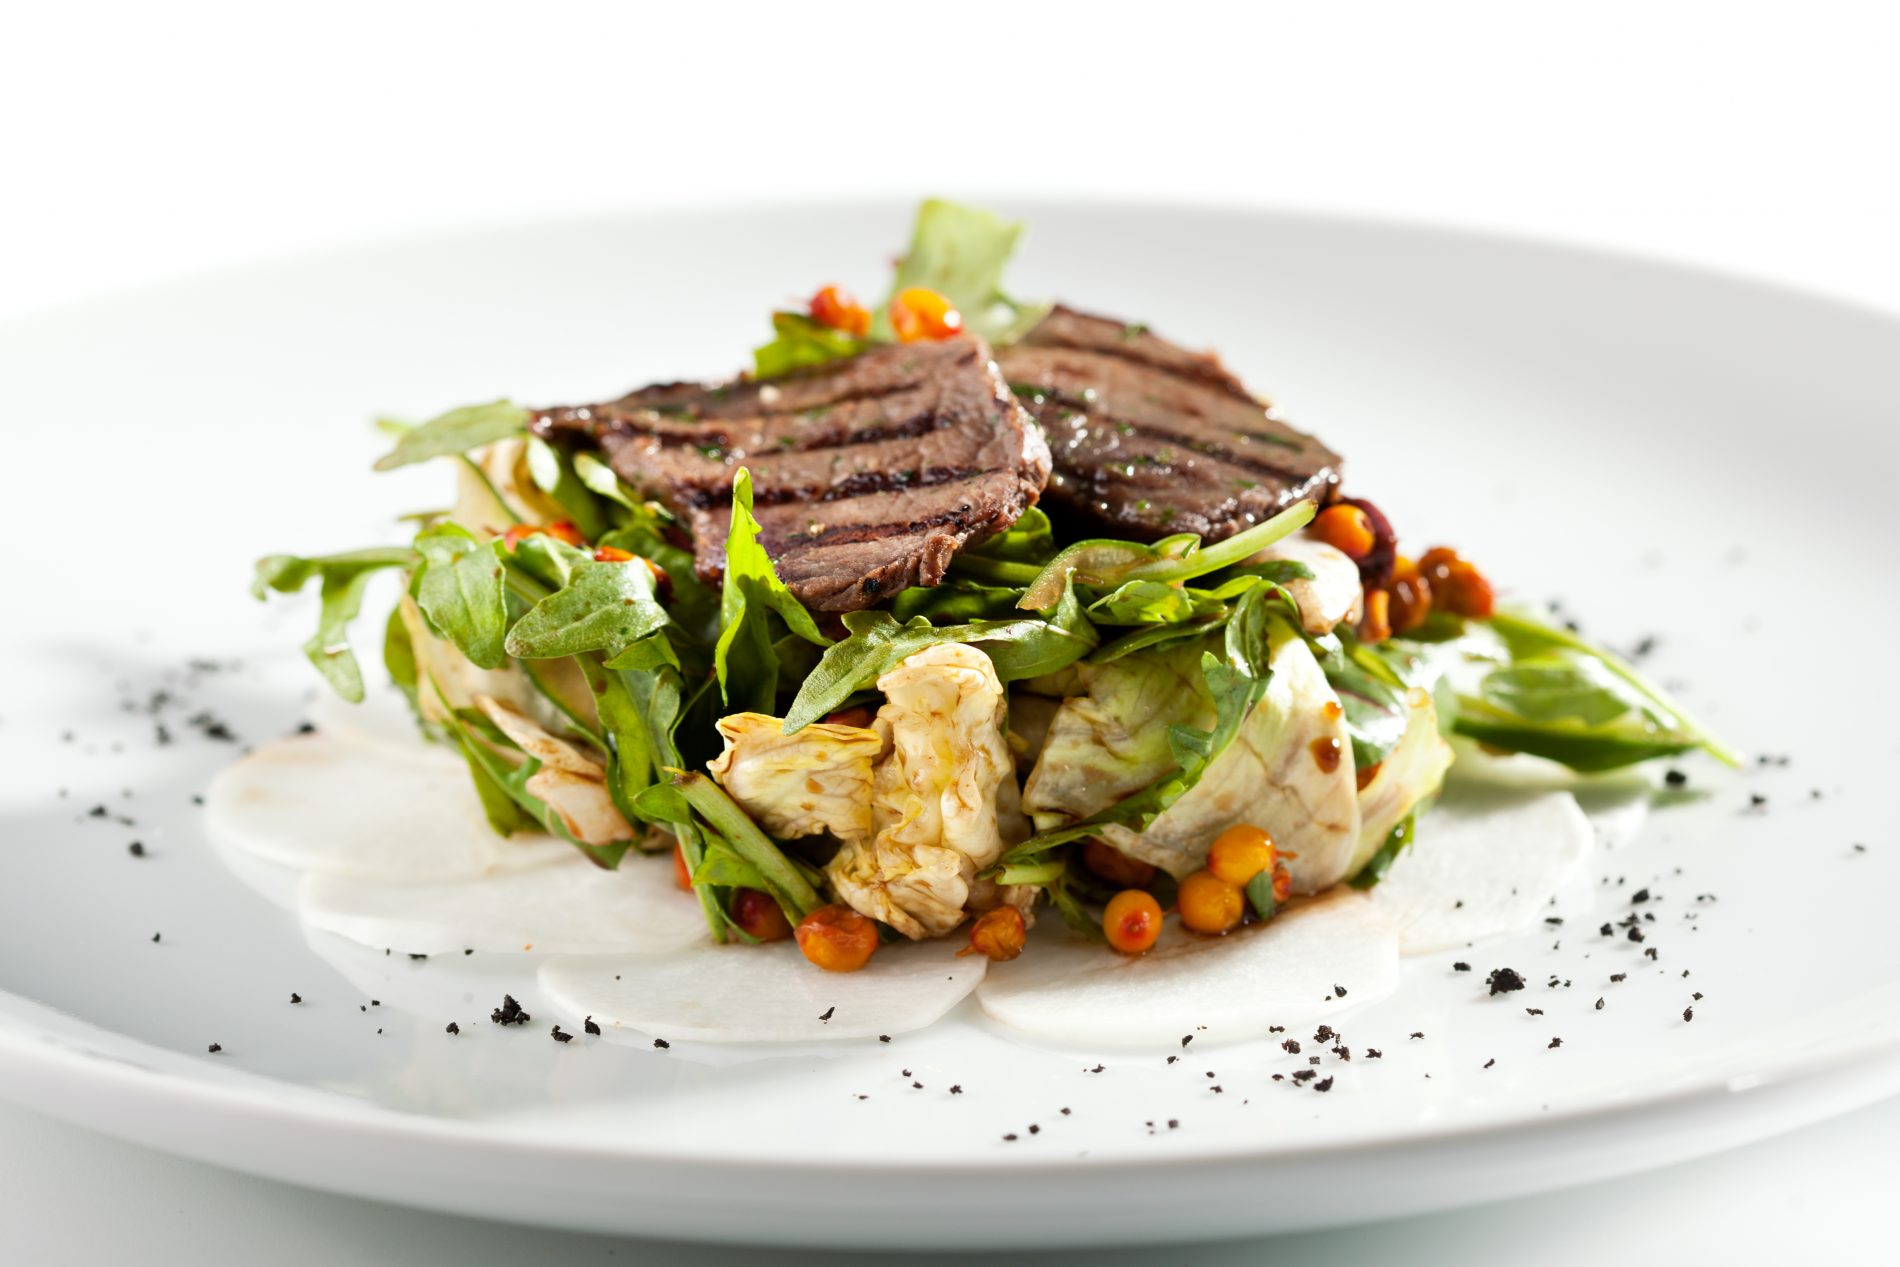 Warm Salad with Grilled Meat and Rocket Salad